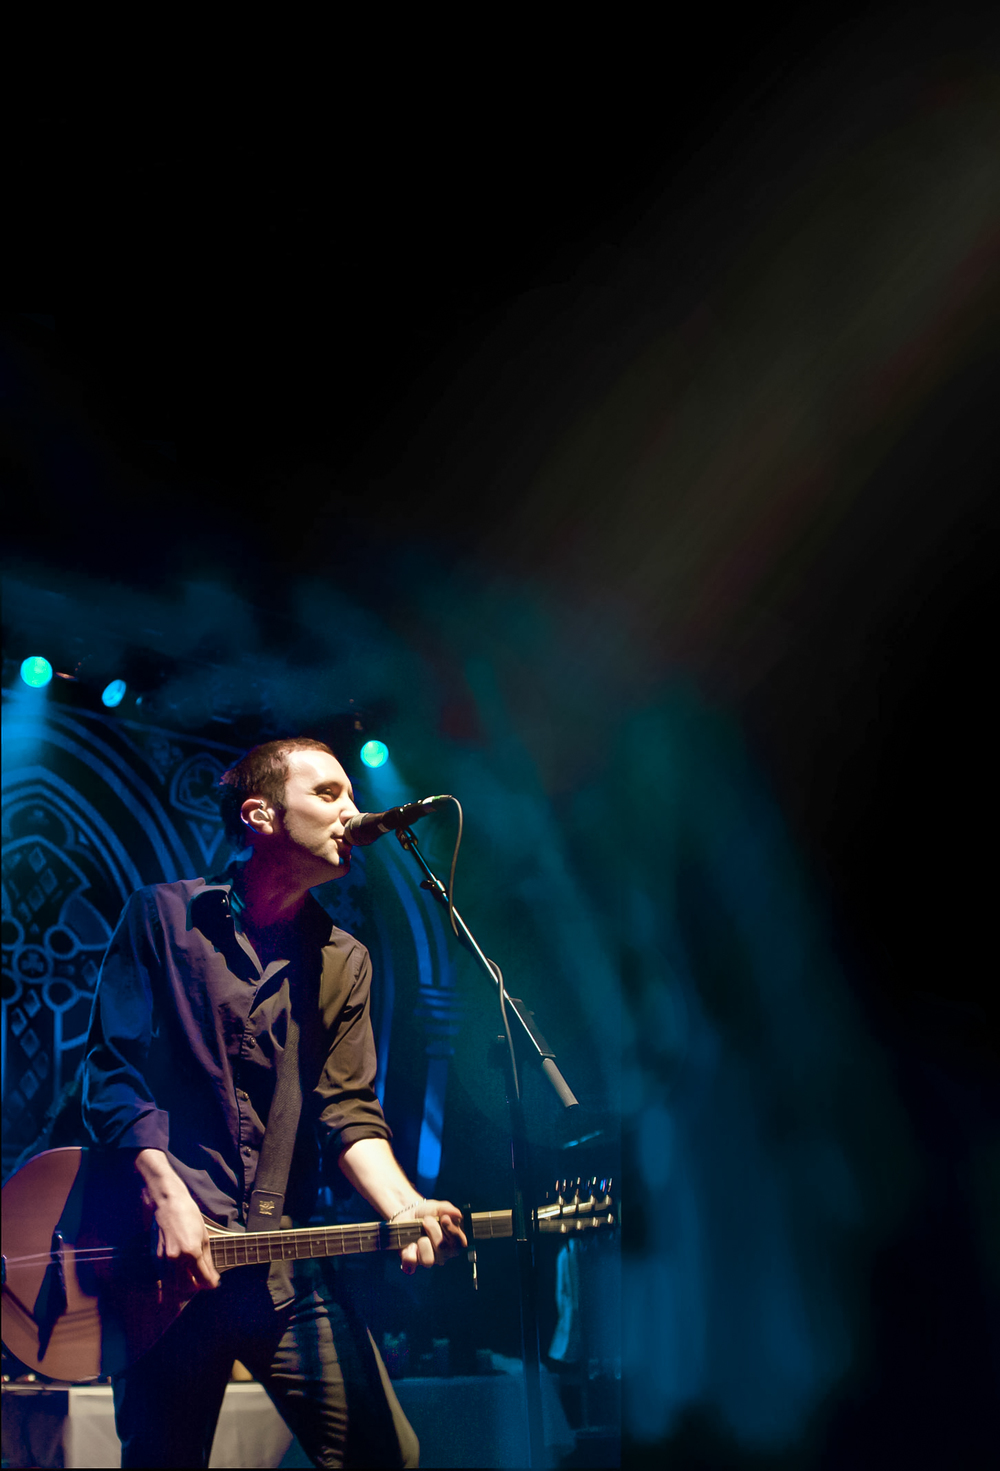 event photographer-dropkick murphys 1.jpg